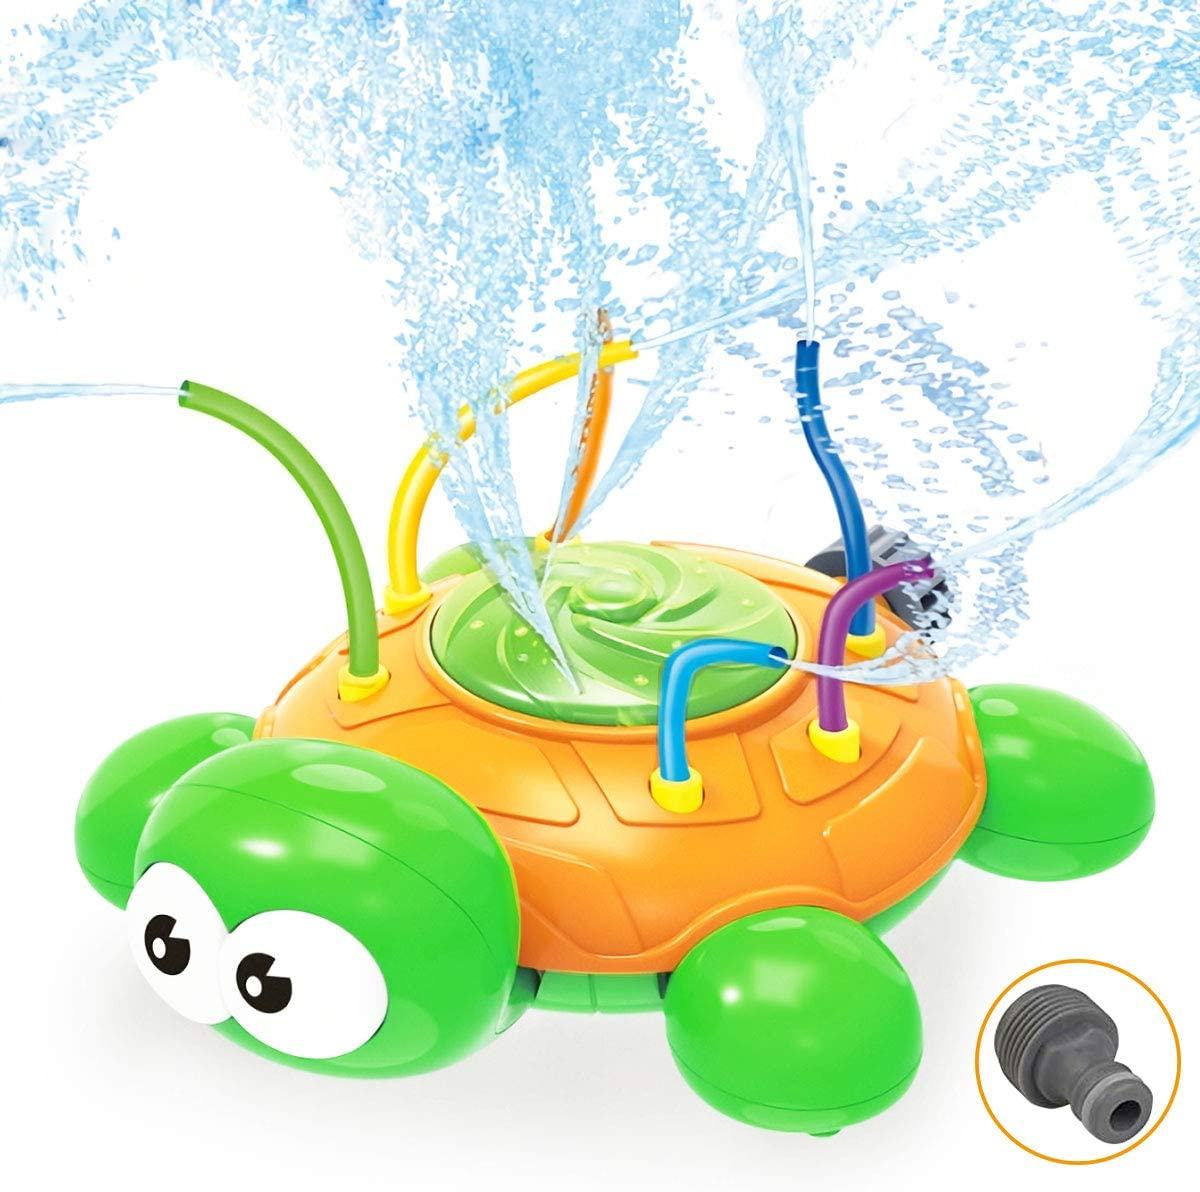 Ingreen Water Spray Sprinkler Toy for Kids - Garden Sprinkler with Hose Swing Tubes Tools, Courtyard Swirl Turtle Spinning Lawn Funny Water Game Outdoor in Summer for Toddlers Children Teens